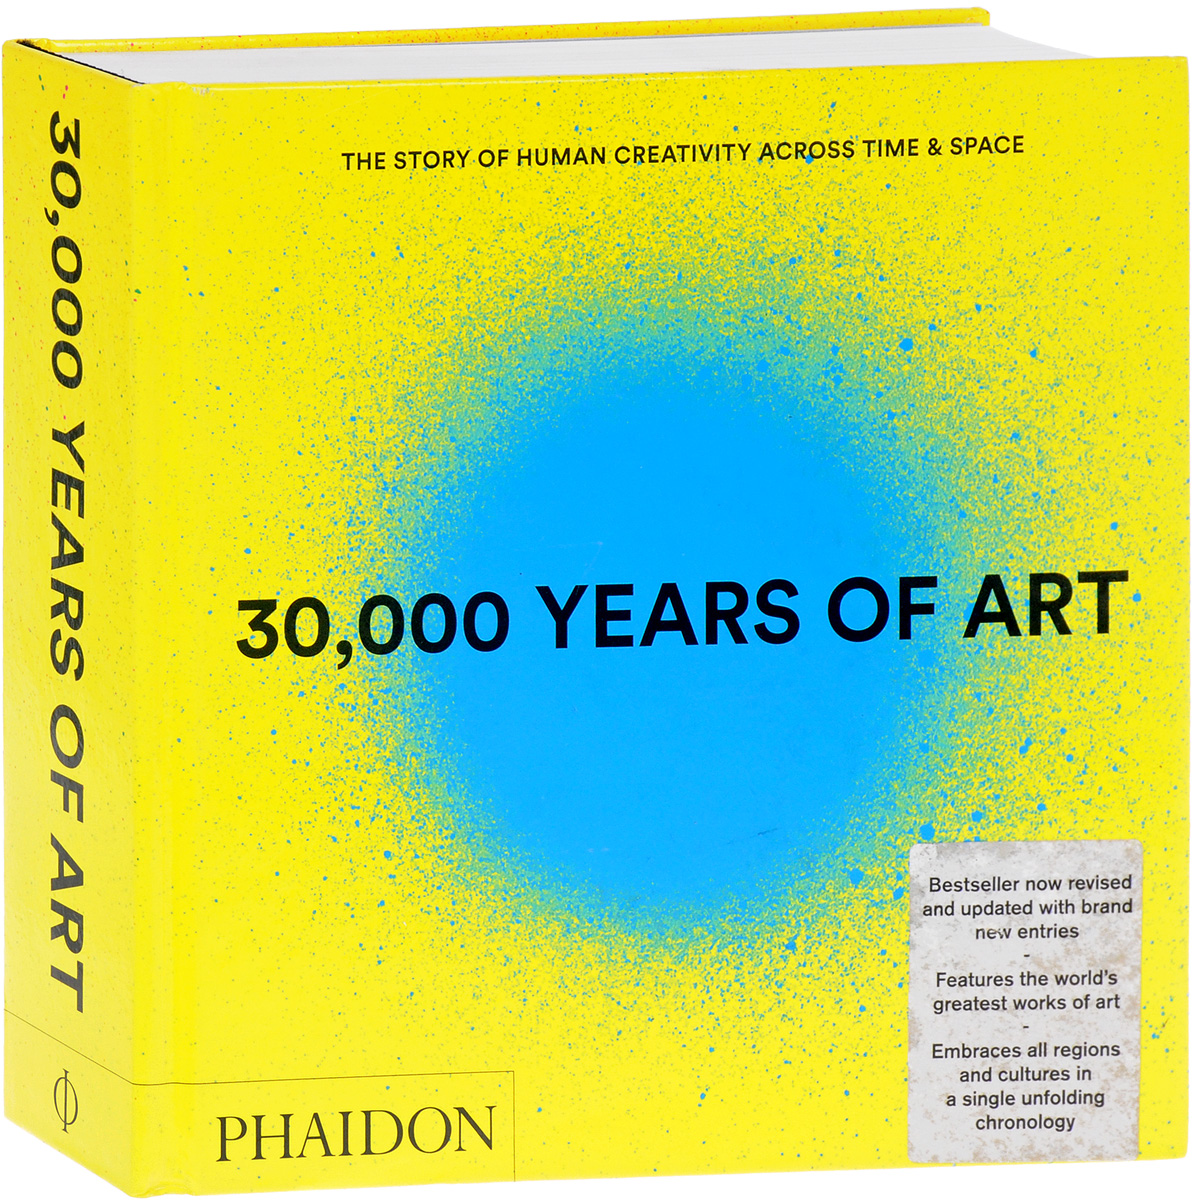 30,000 Years of Art: The Story of Human Creativity Across Time and Space the illustrated story of art